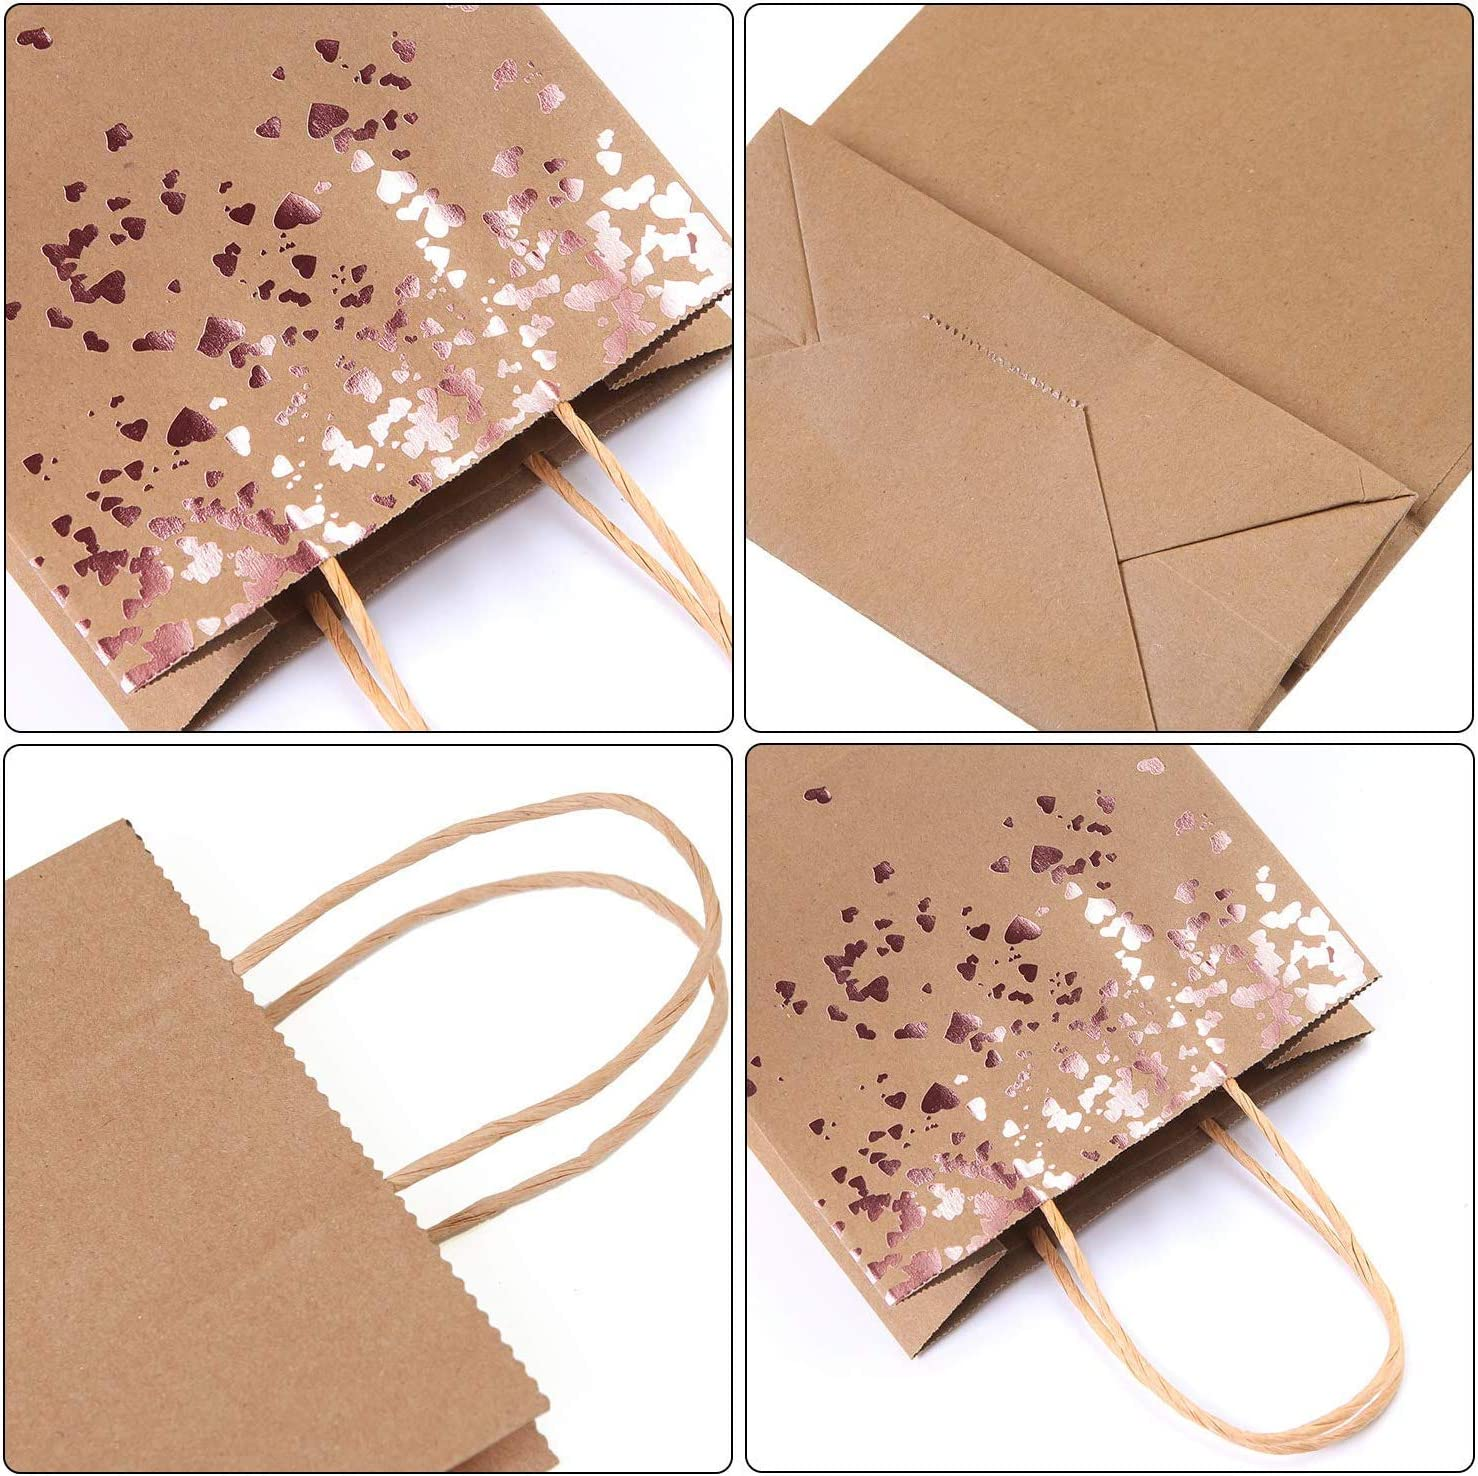 Cooraby 30 Pieces Paper Bags Hen Party Bag Birthday Kraft Bag Bronzing Rose Gold Party Favor Bags with Handle for Birthday Wedding and Party Celebrations Tea Party Gift Style A